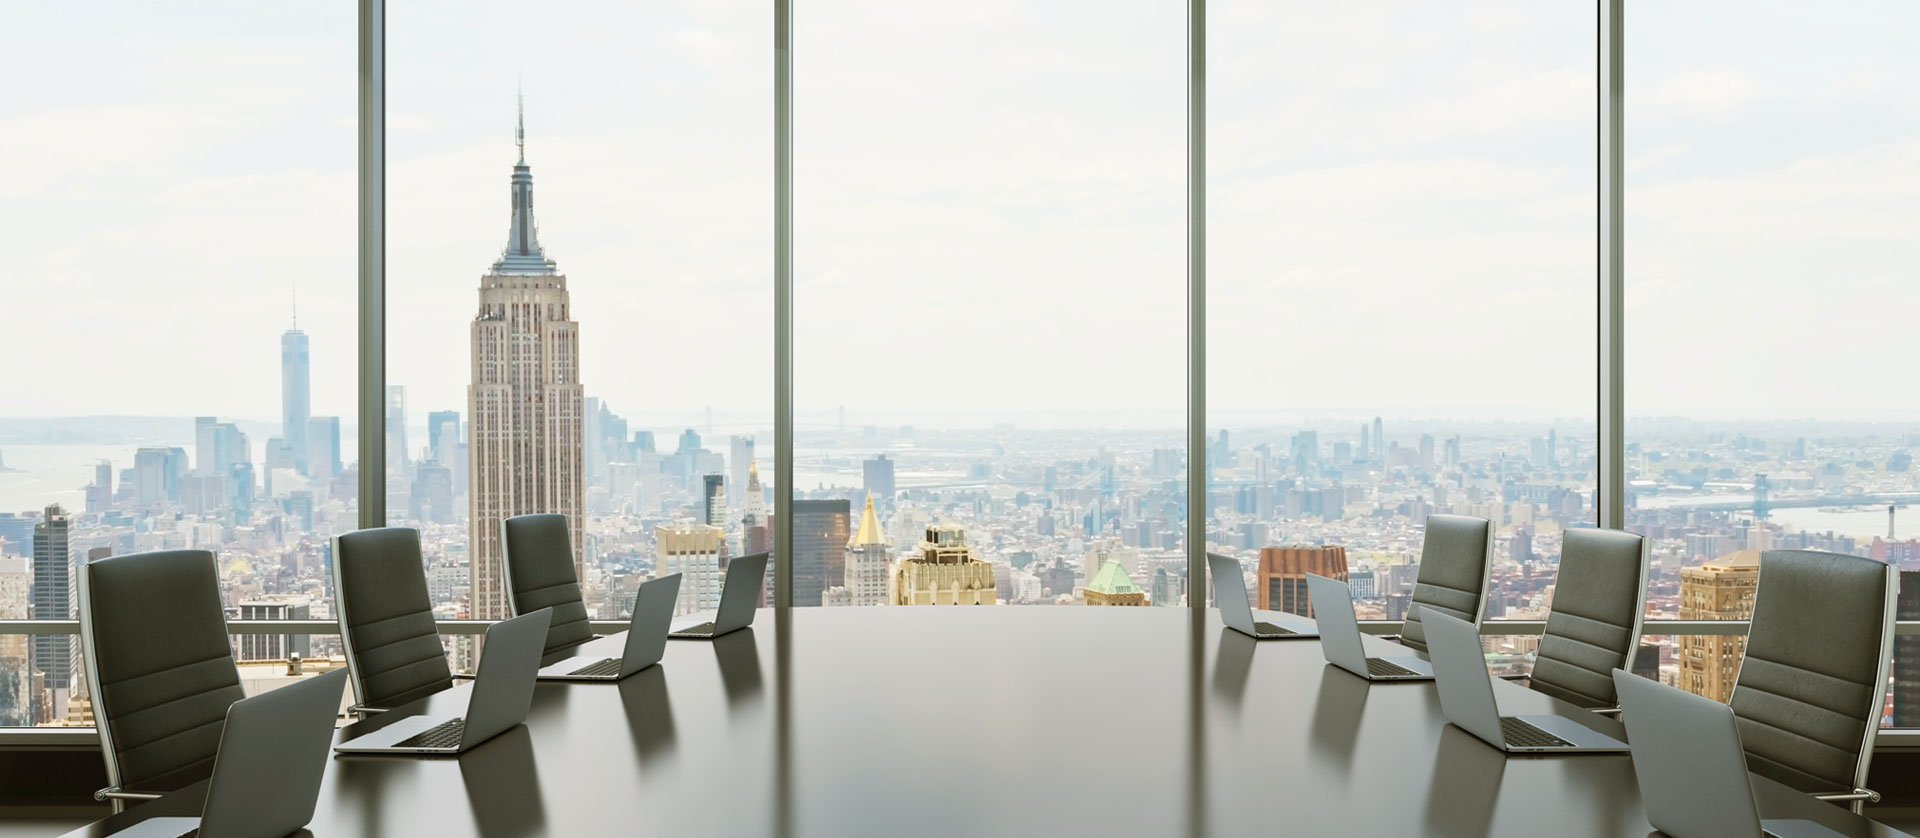 End of the conference room table with a view out over a city skyline